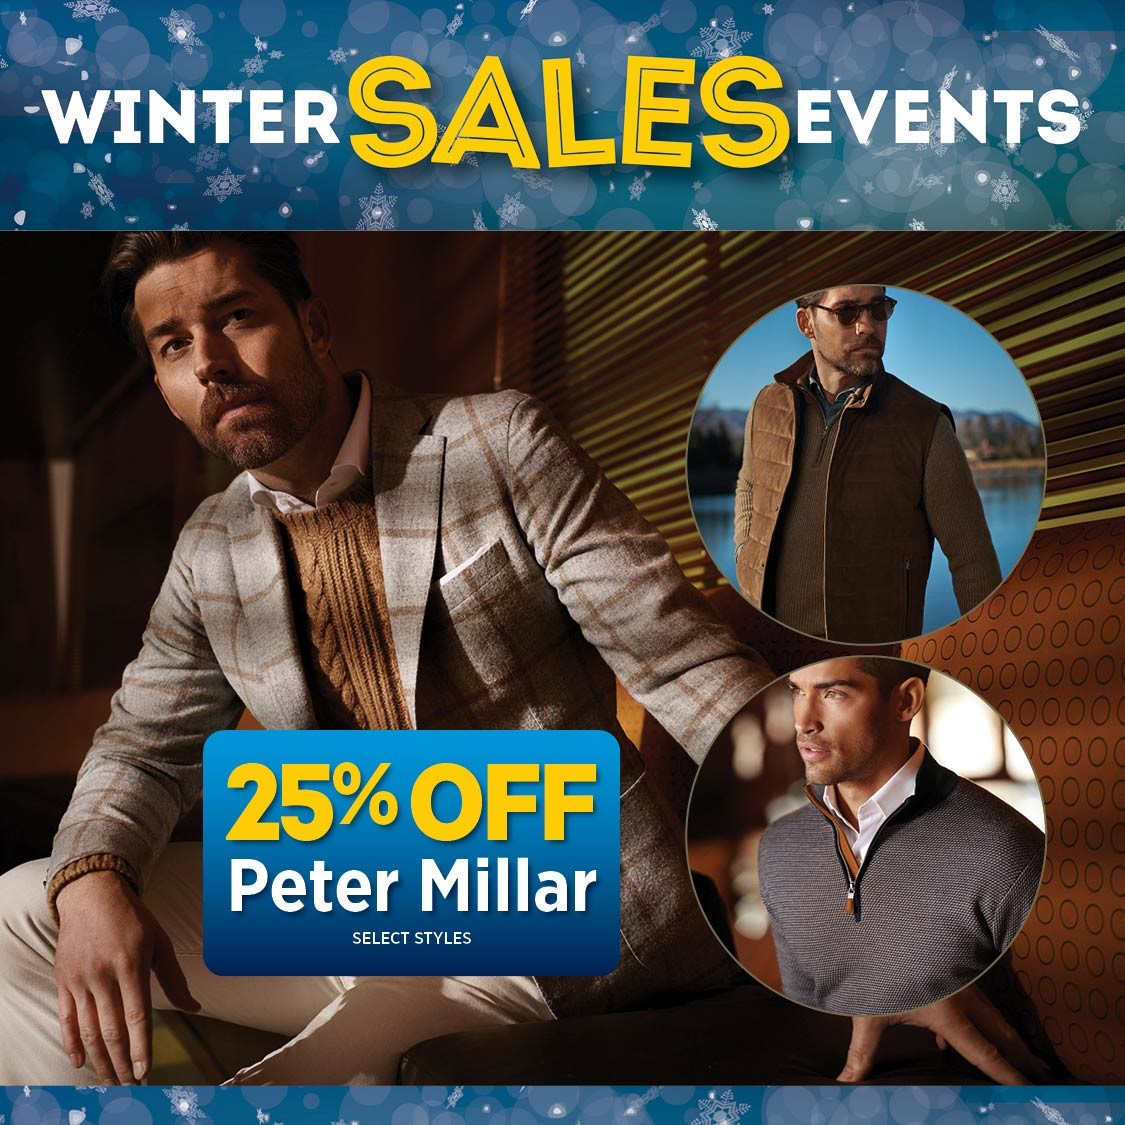 Save 25% Off select Peter Millar styles through Saturday! from Granger Owings